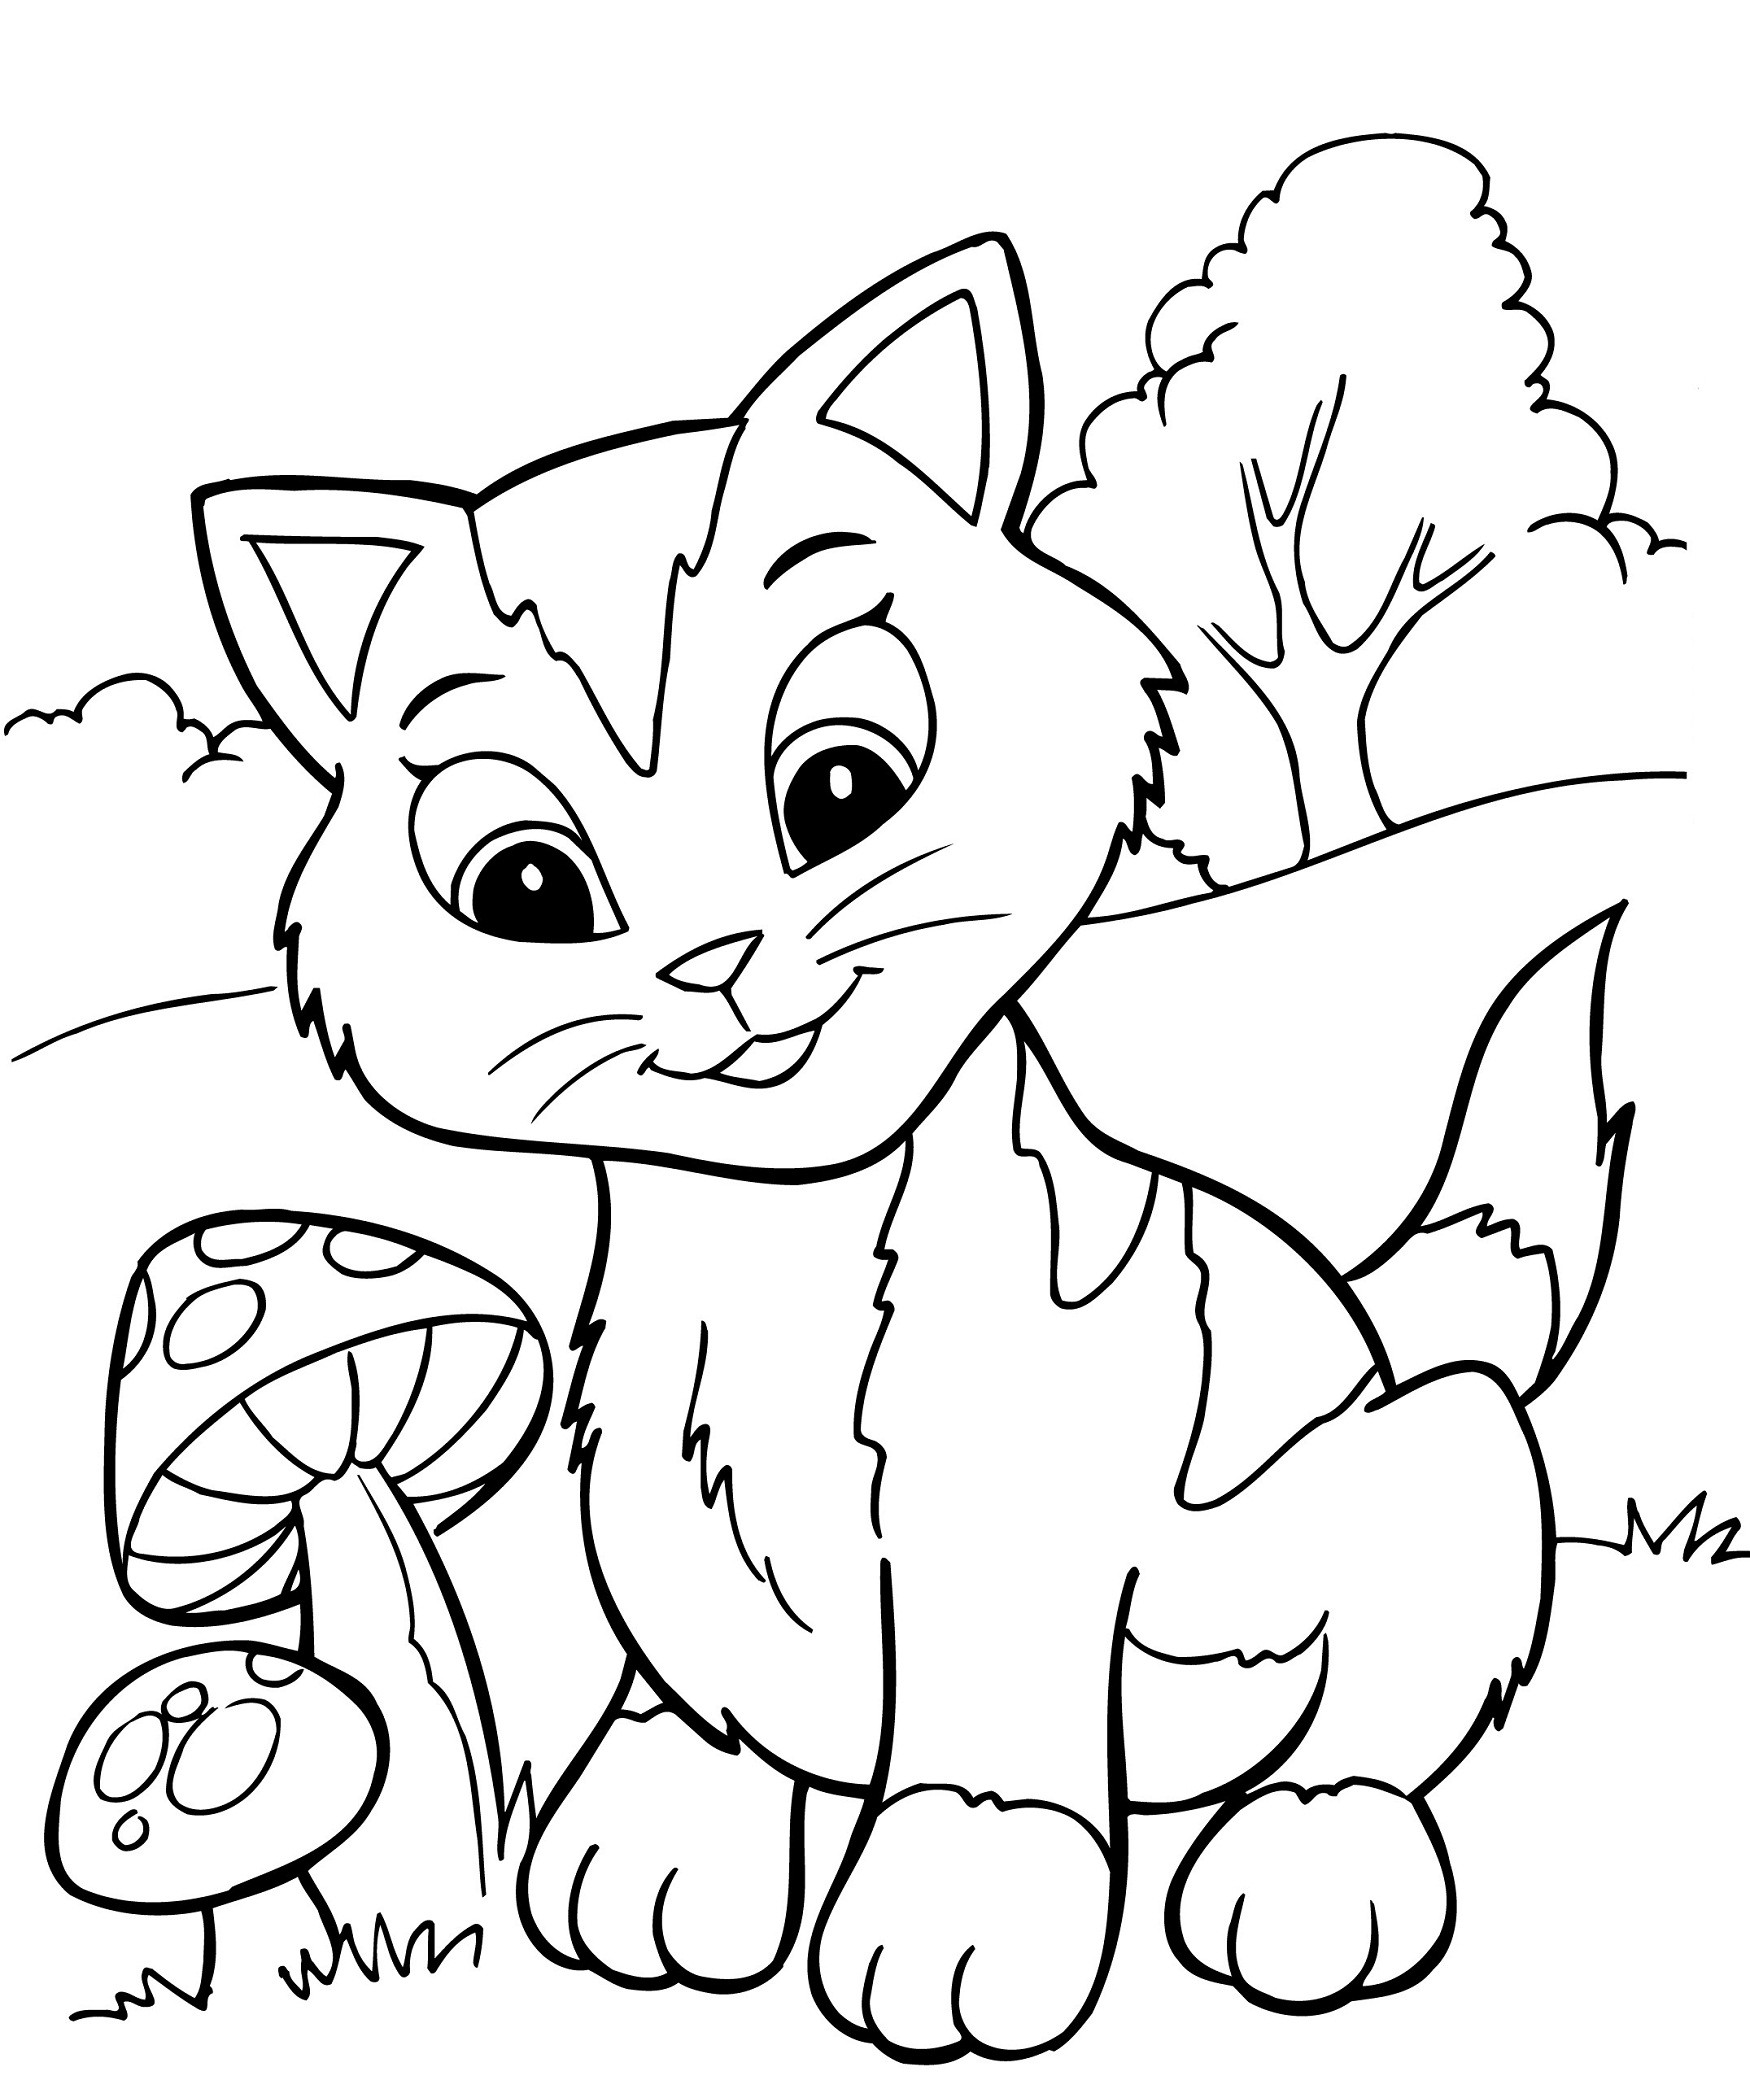 Imagination Coloring Pages